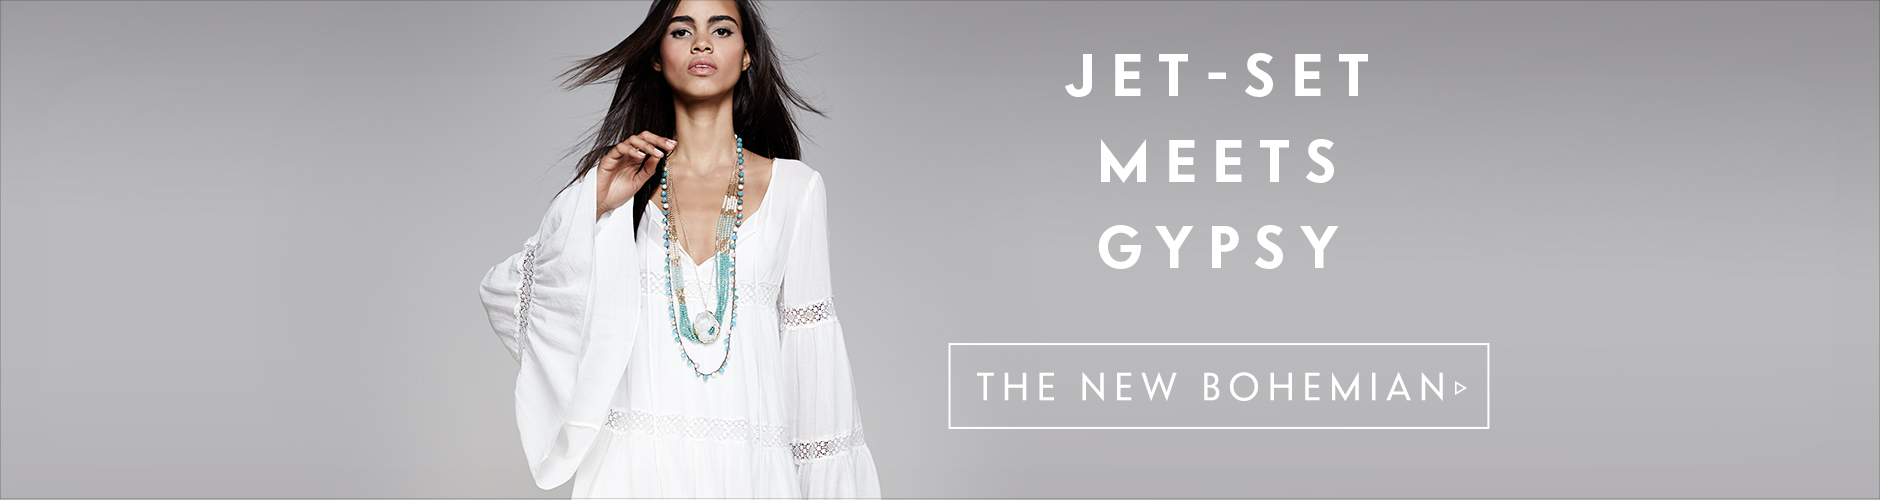 Jet-set meets gypsy: The New Bohemian